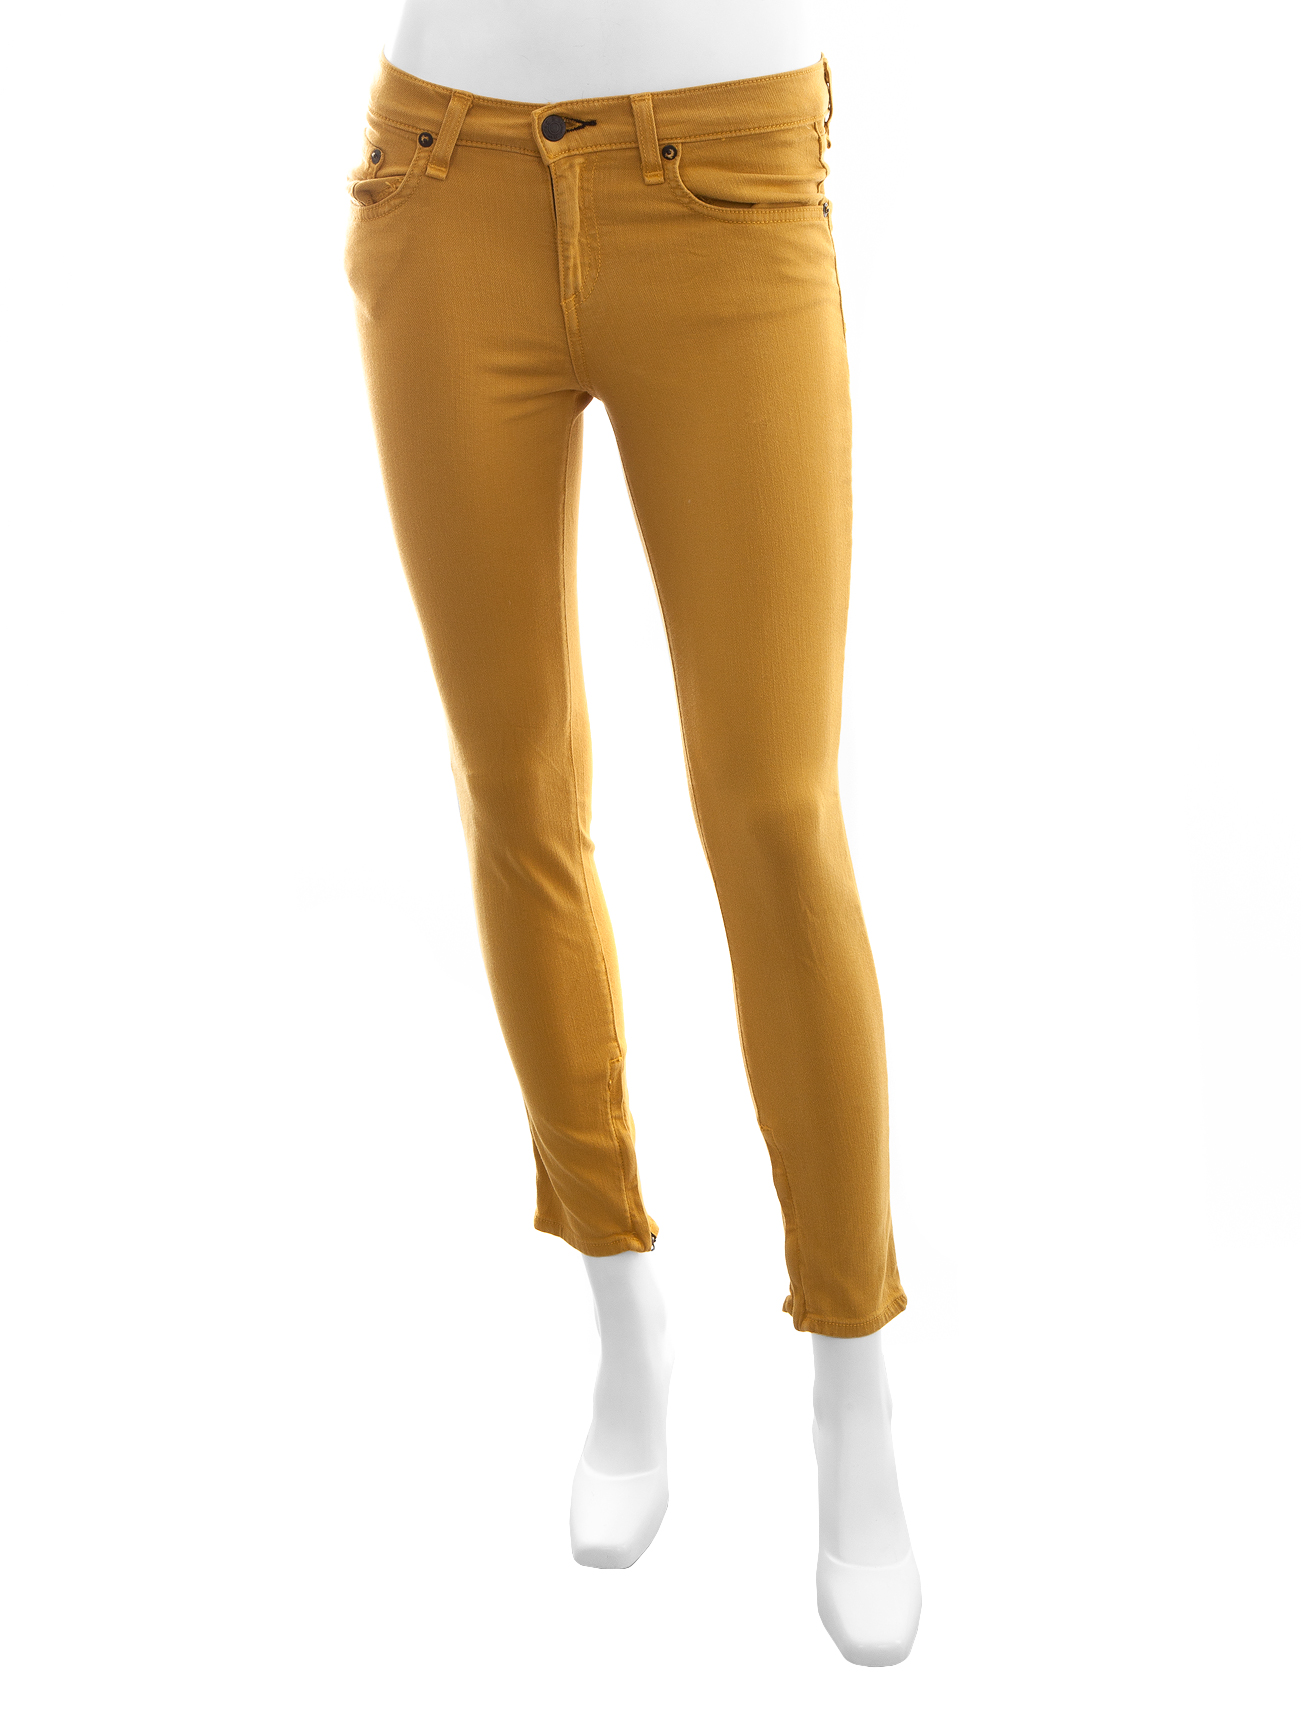 Original Navy Is A Masculine Color That Can Easily Take You From Casual To Business To Night Navy Pants Come To Life When Worn With The Right Shirt My Advice Is Sanctuary Clothing Womens Songbird  Orange, Gold, Mustard, Silver And So On